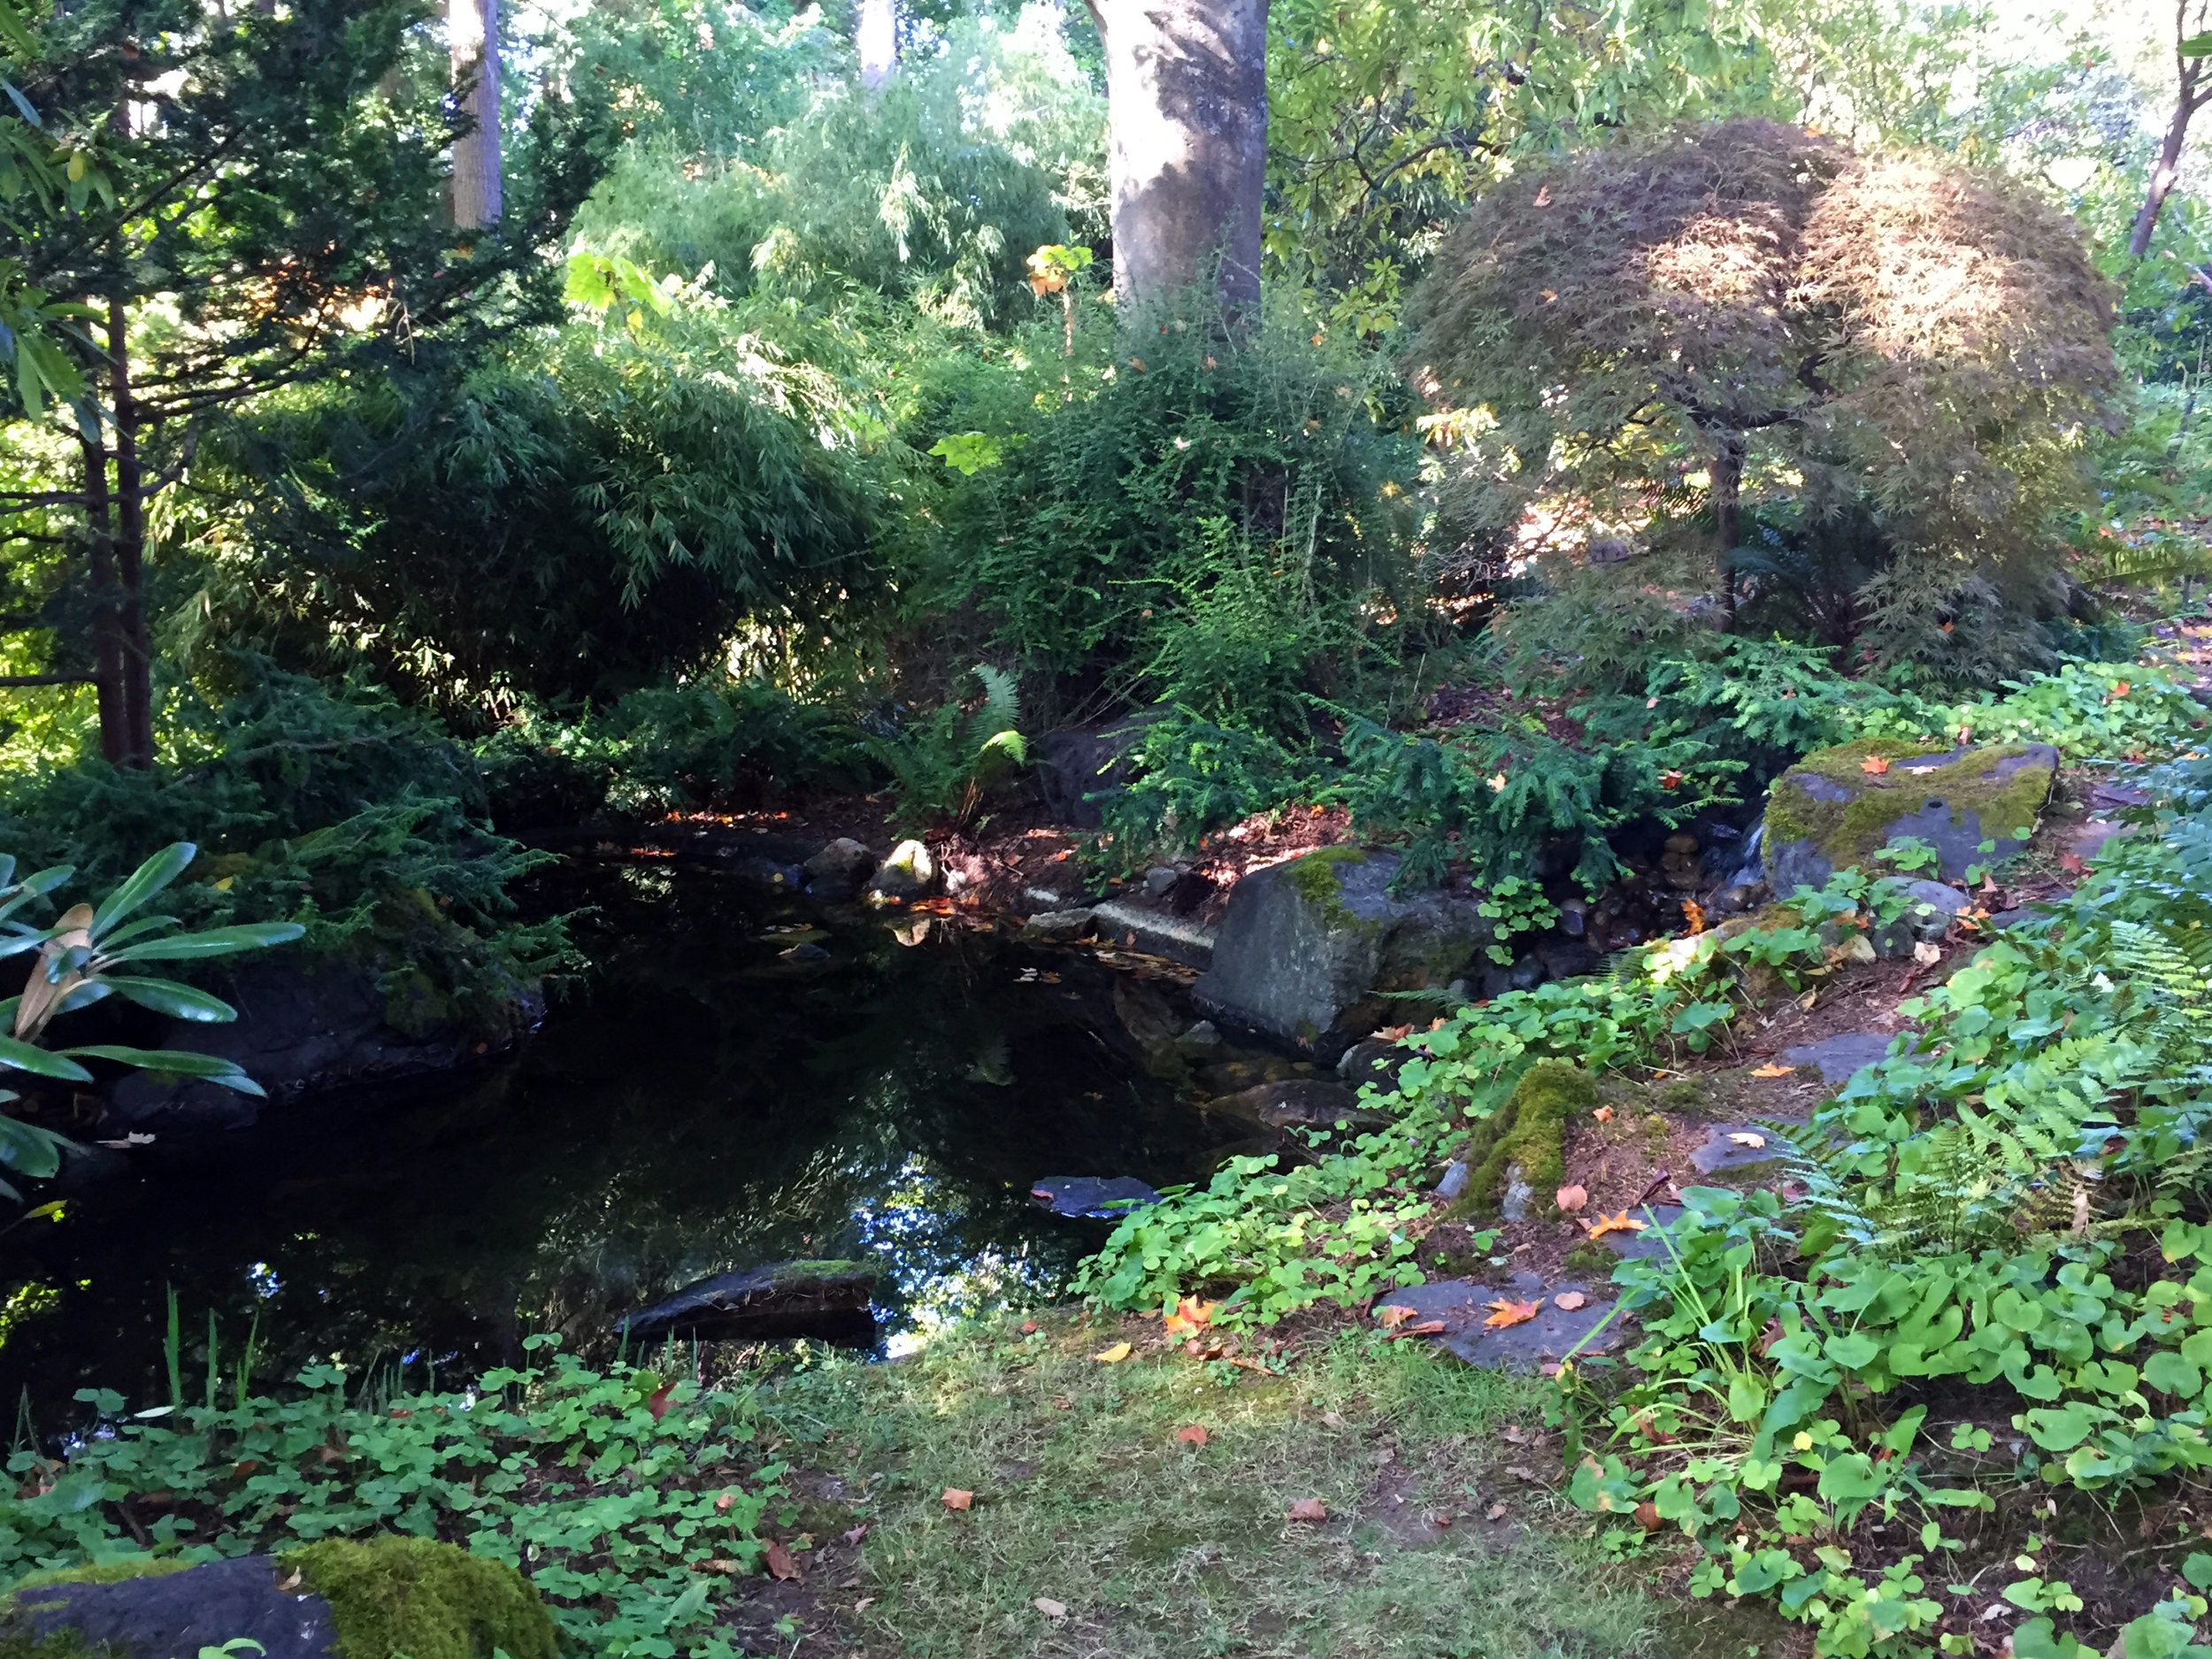 The Pond in the Woodland Garden